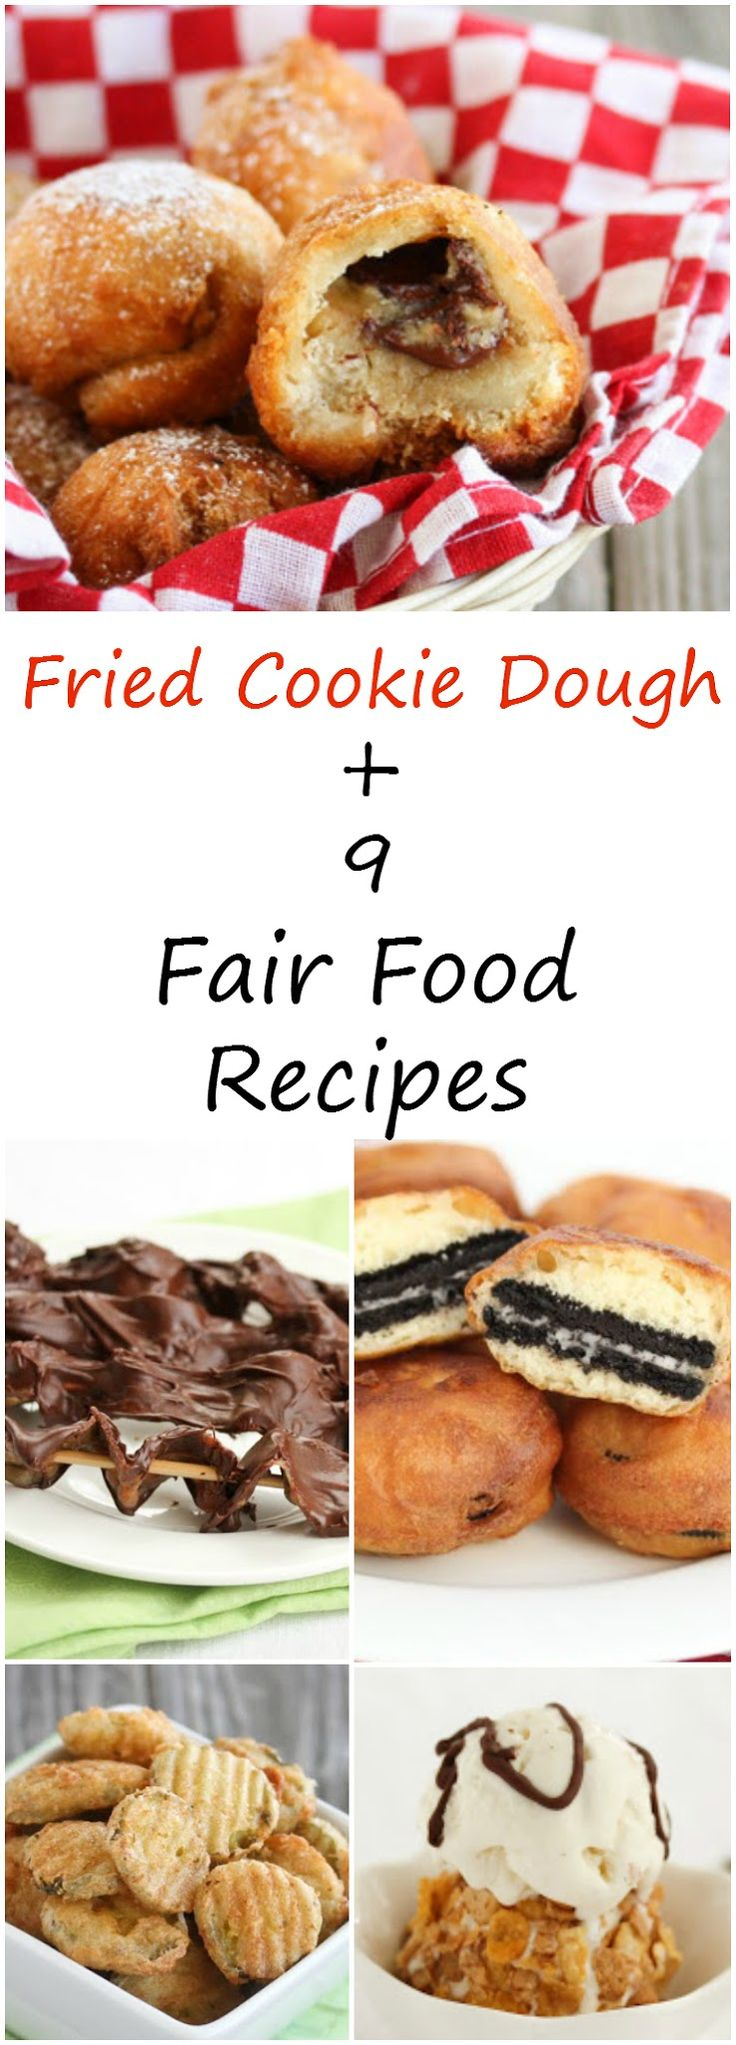 Fried Cookie Dough and 9 Homemade Fair Food Recipes